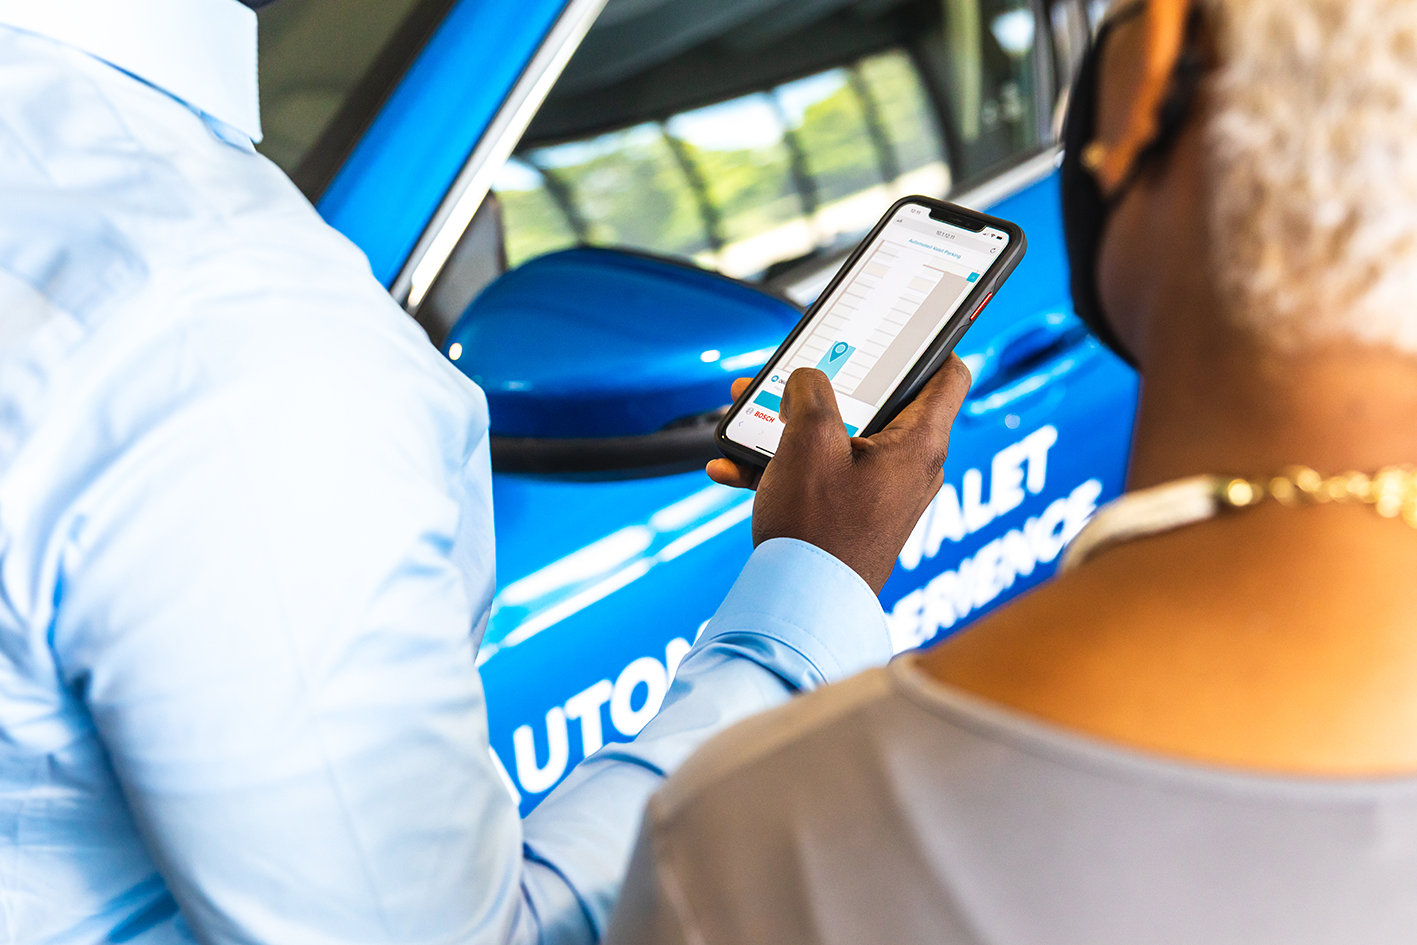 Highly automated valet parking: connected vehicle and smart infrastructure enhance automated parking